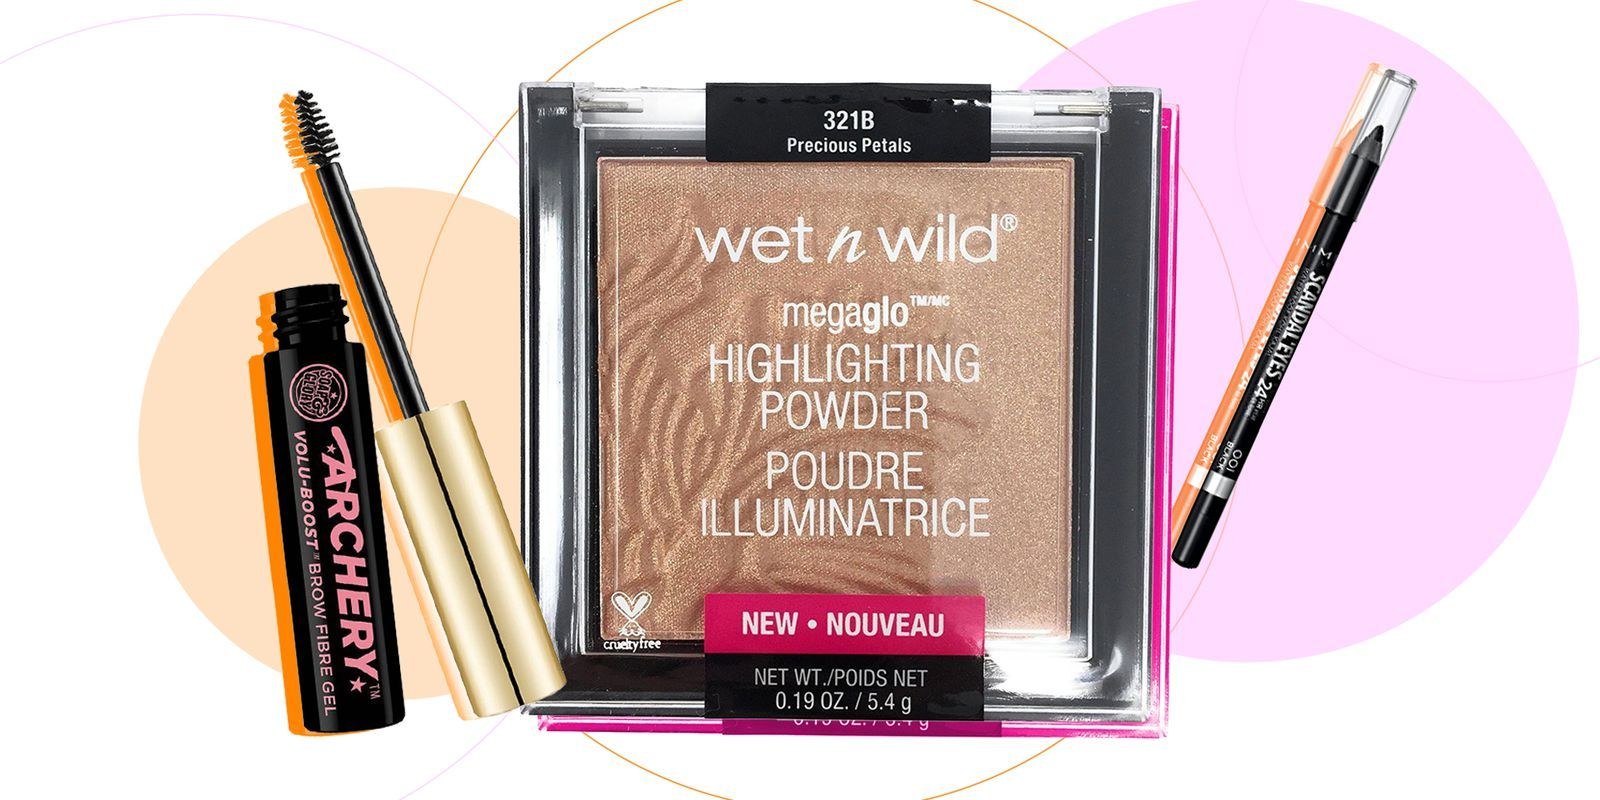 The 17 Best Drugstore Makeup Products I've Ever Tried